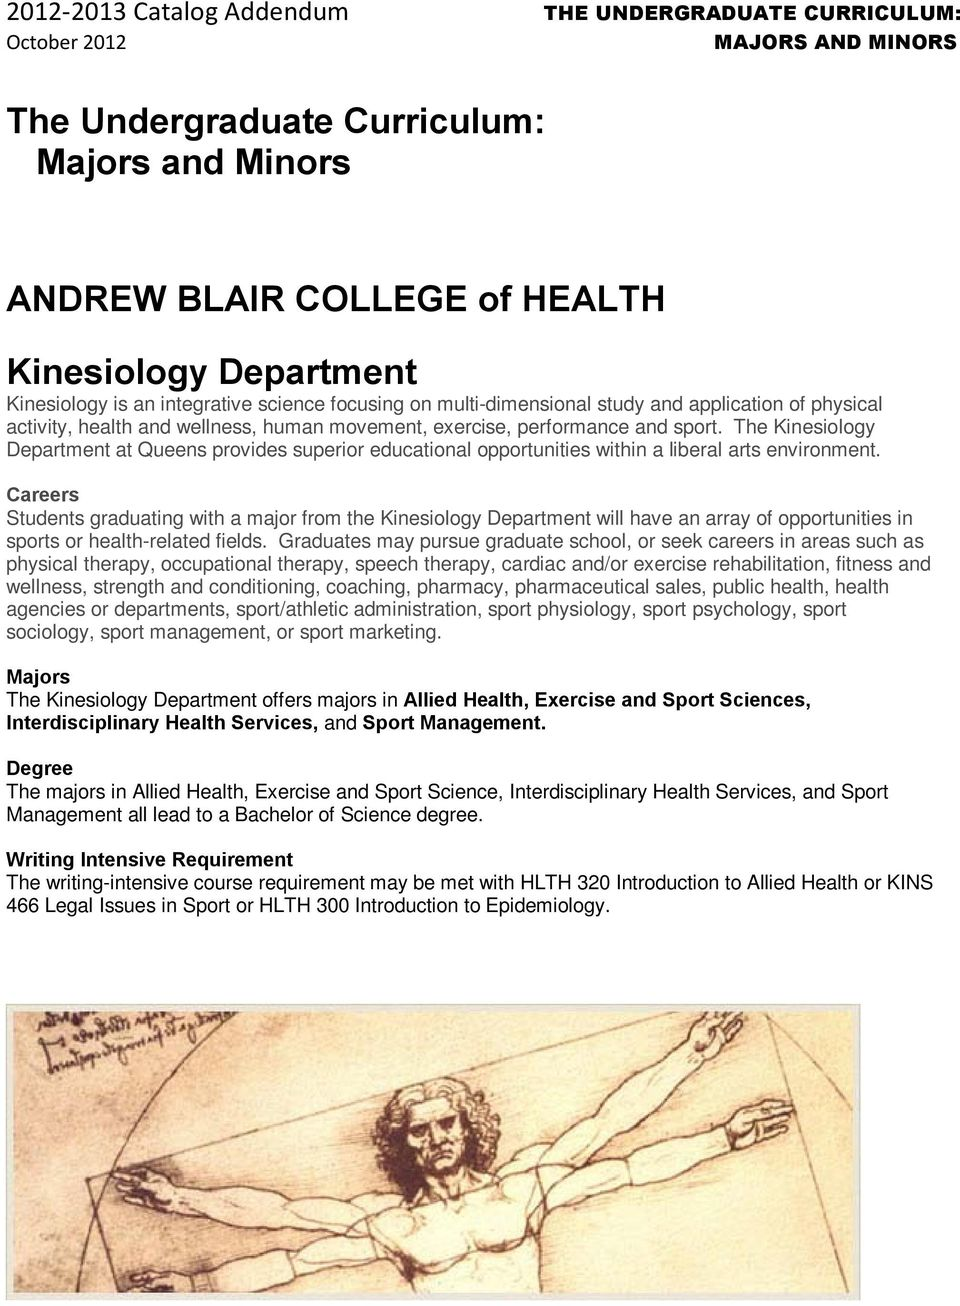 The Kinesiology Department at Queens provides superior educational opportunities within a liberal arts environment.